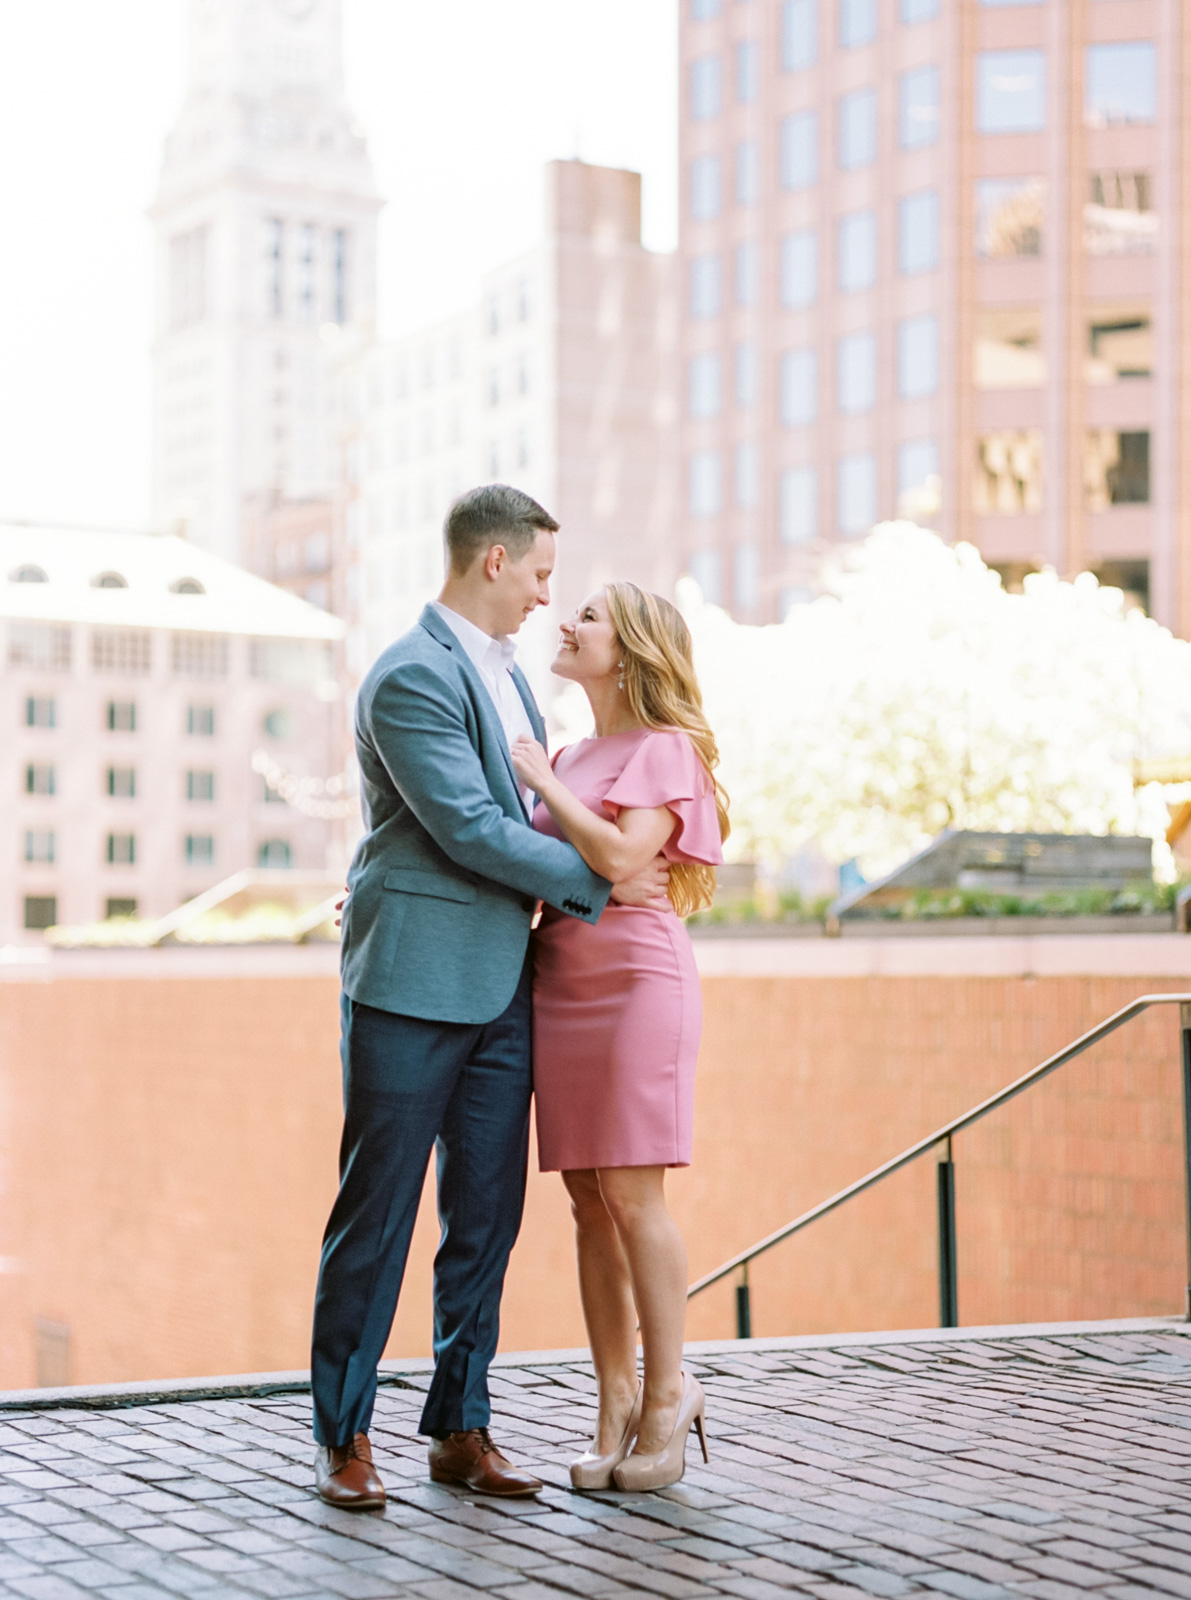 Stylish Summer Engagement Session in Downtown Boston-33.jpg